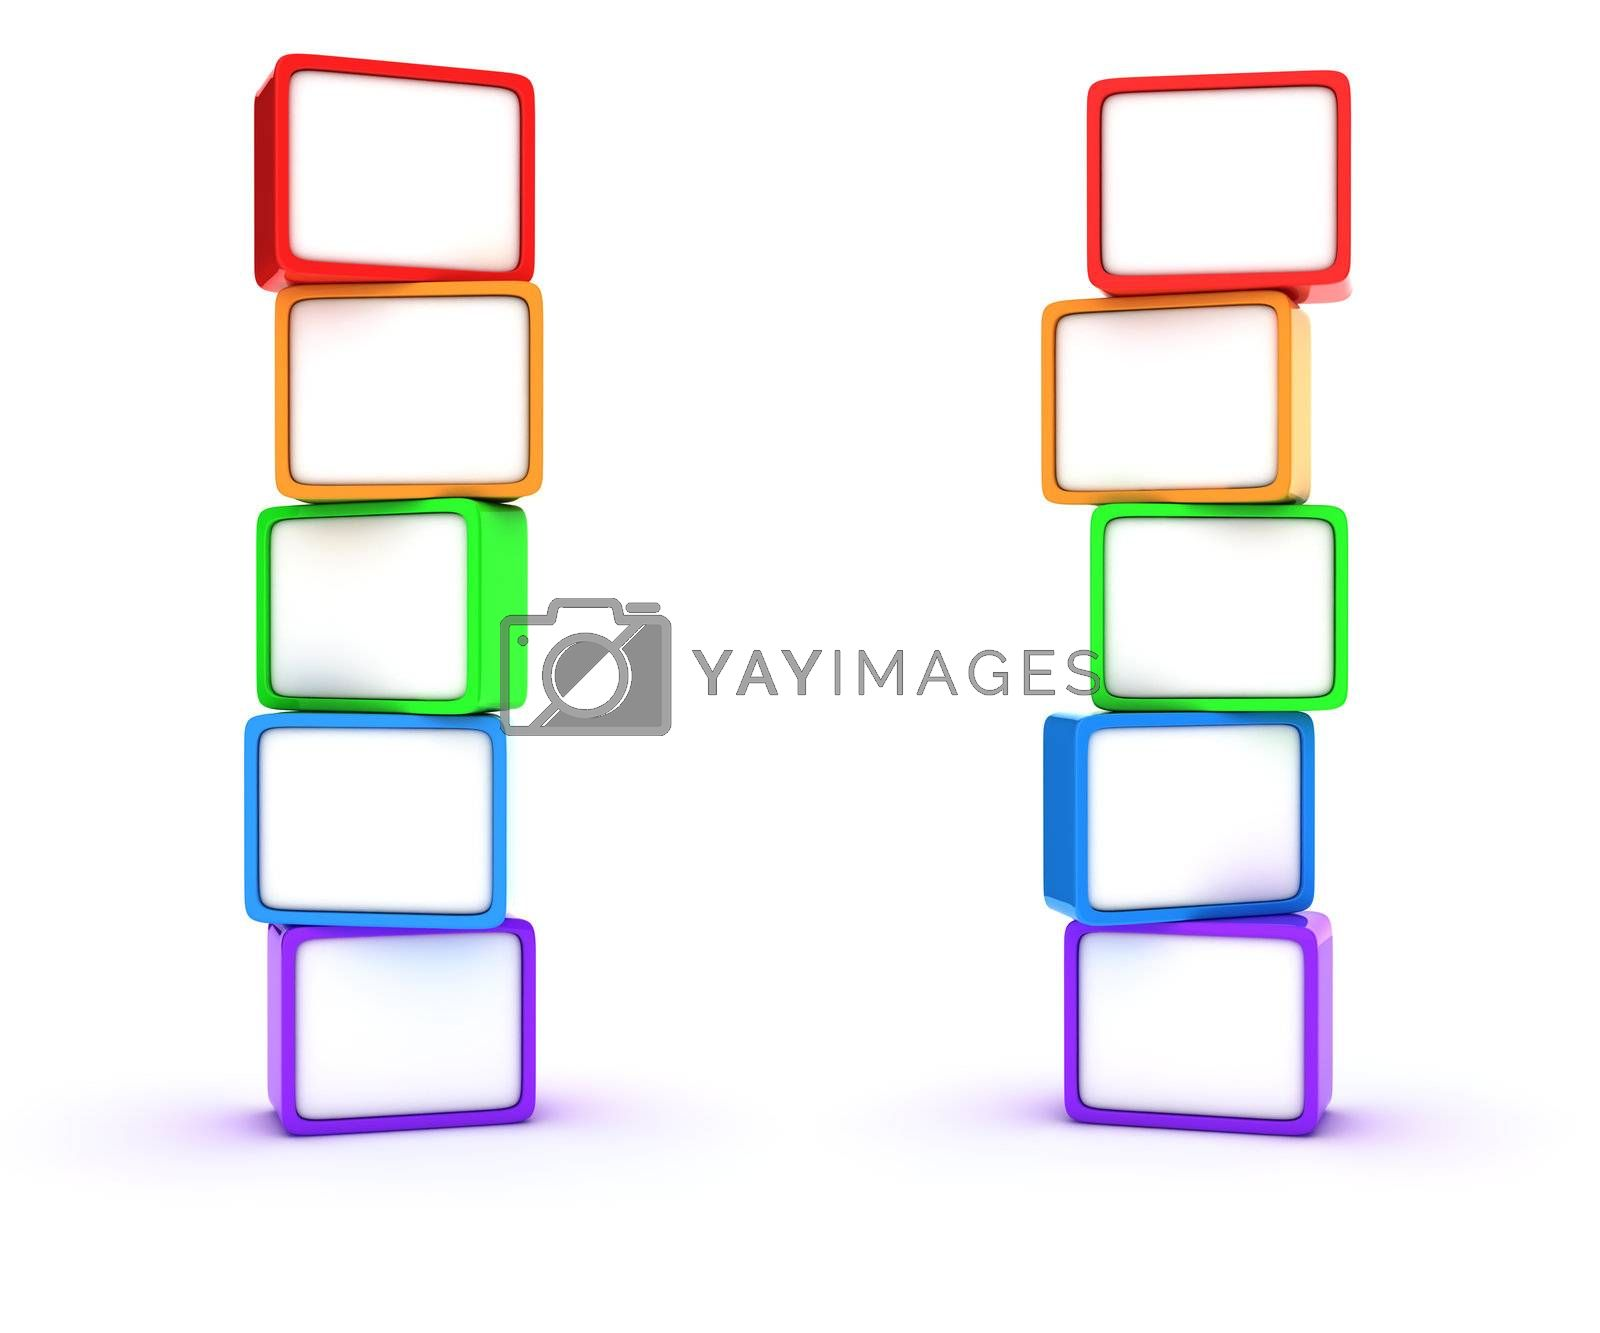 Two columns of multicolored cubes